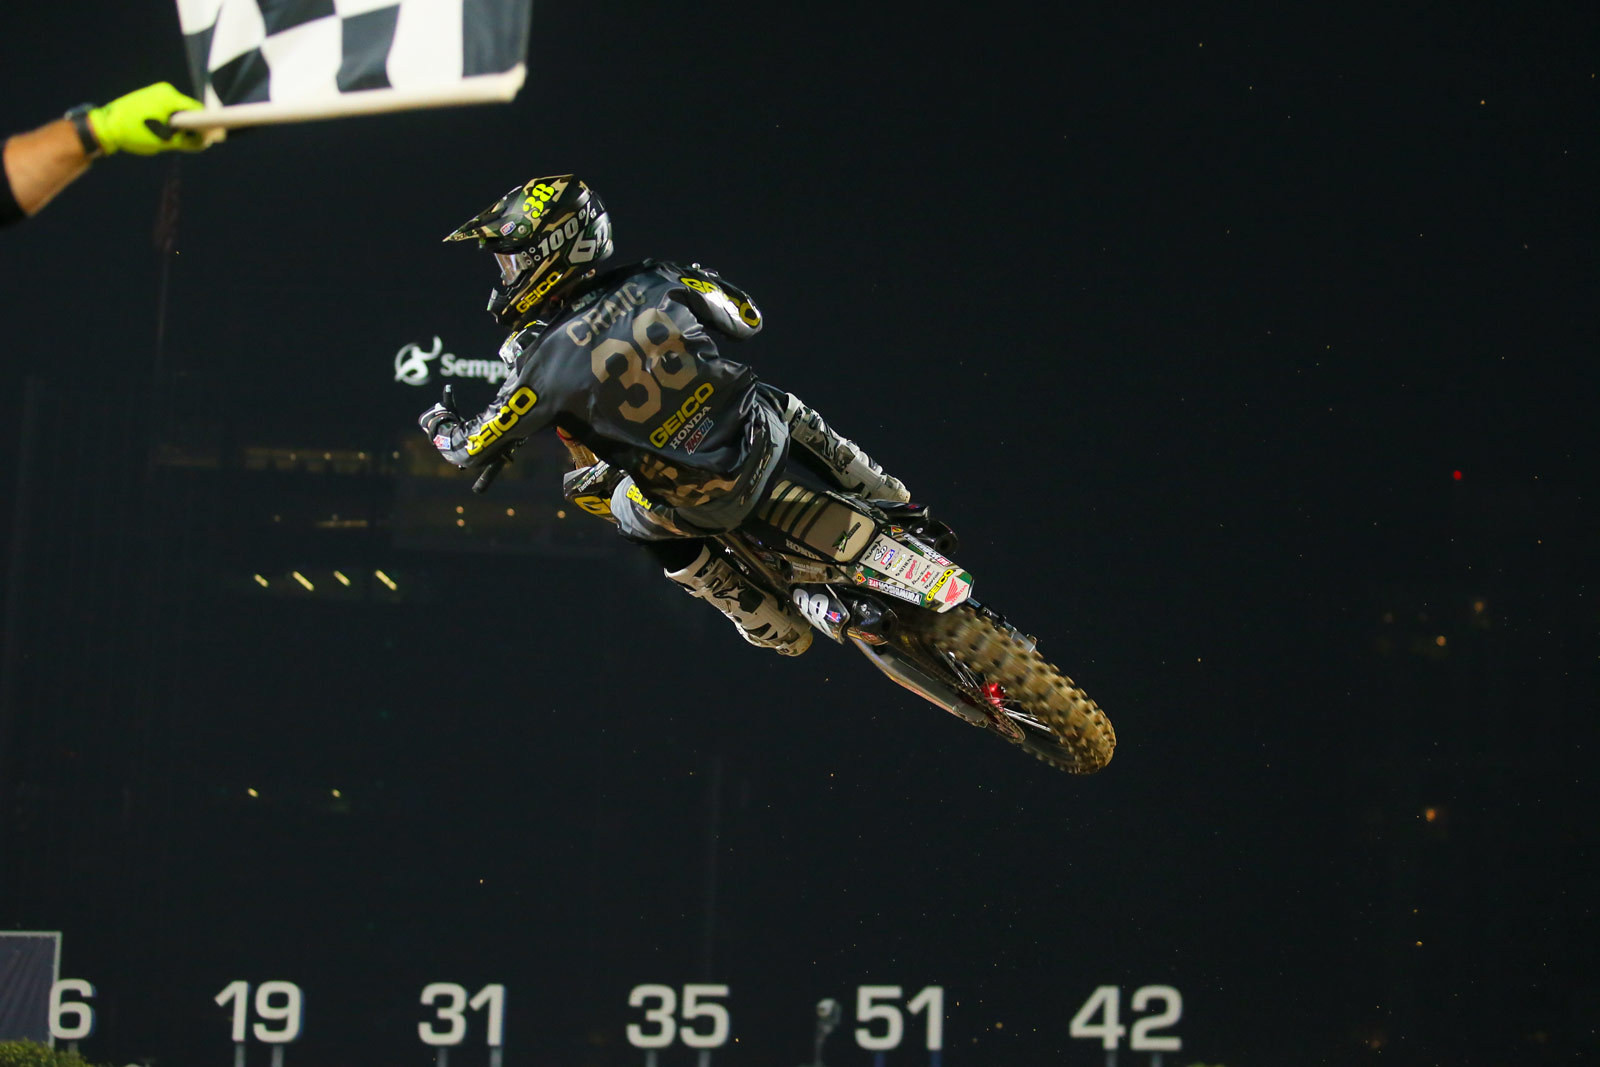 Christian Craig - Photo Blast: San Diego 2 - Motocross Pictures - Vital MX